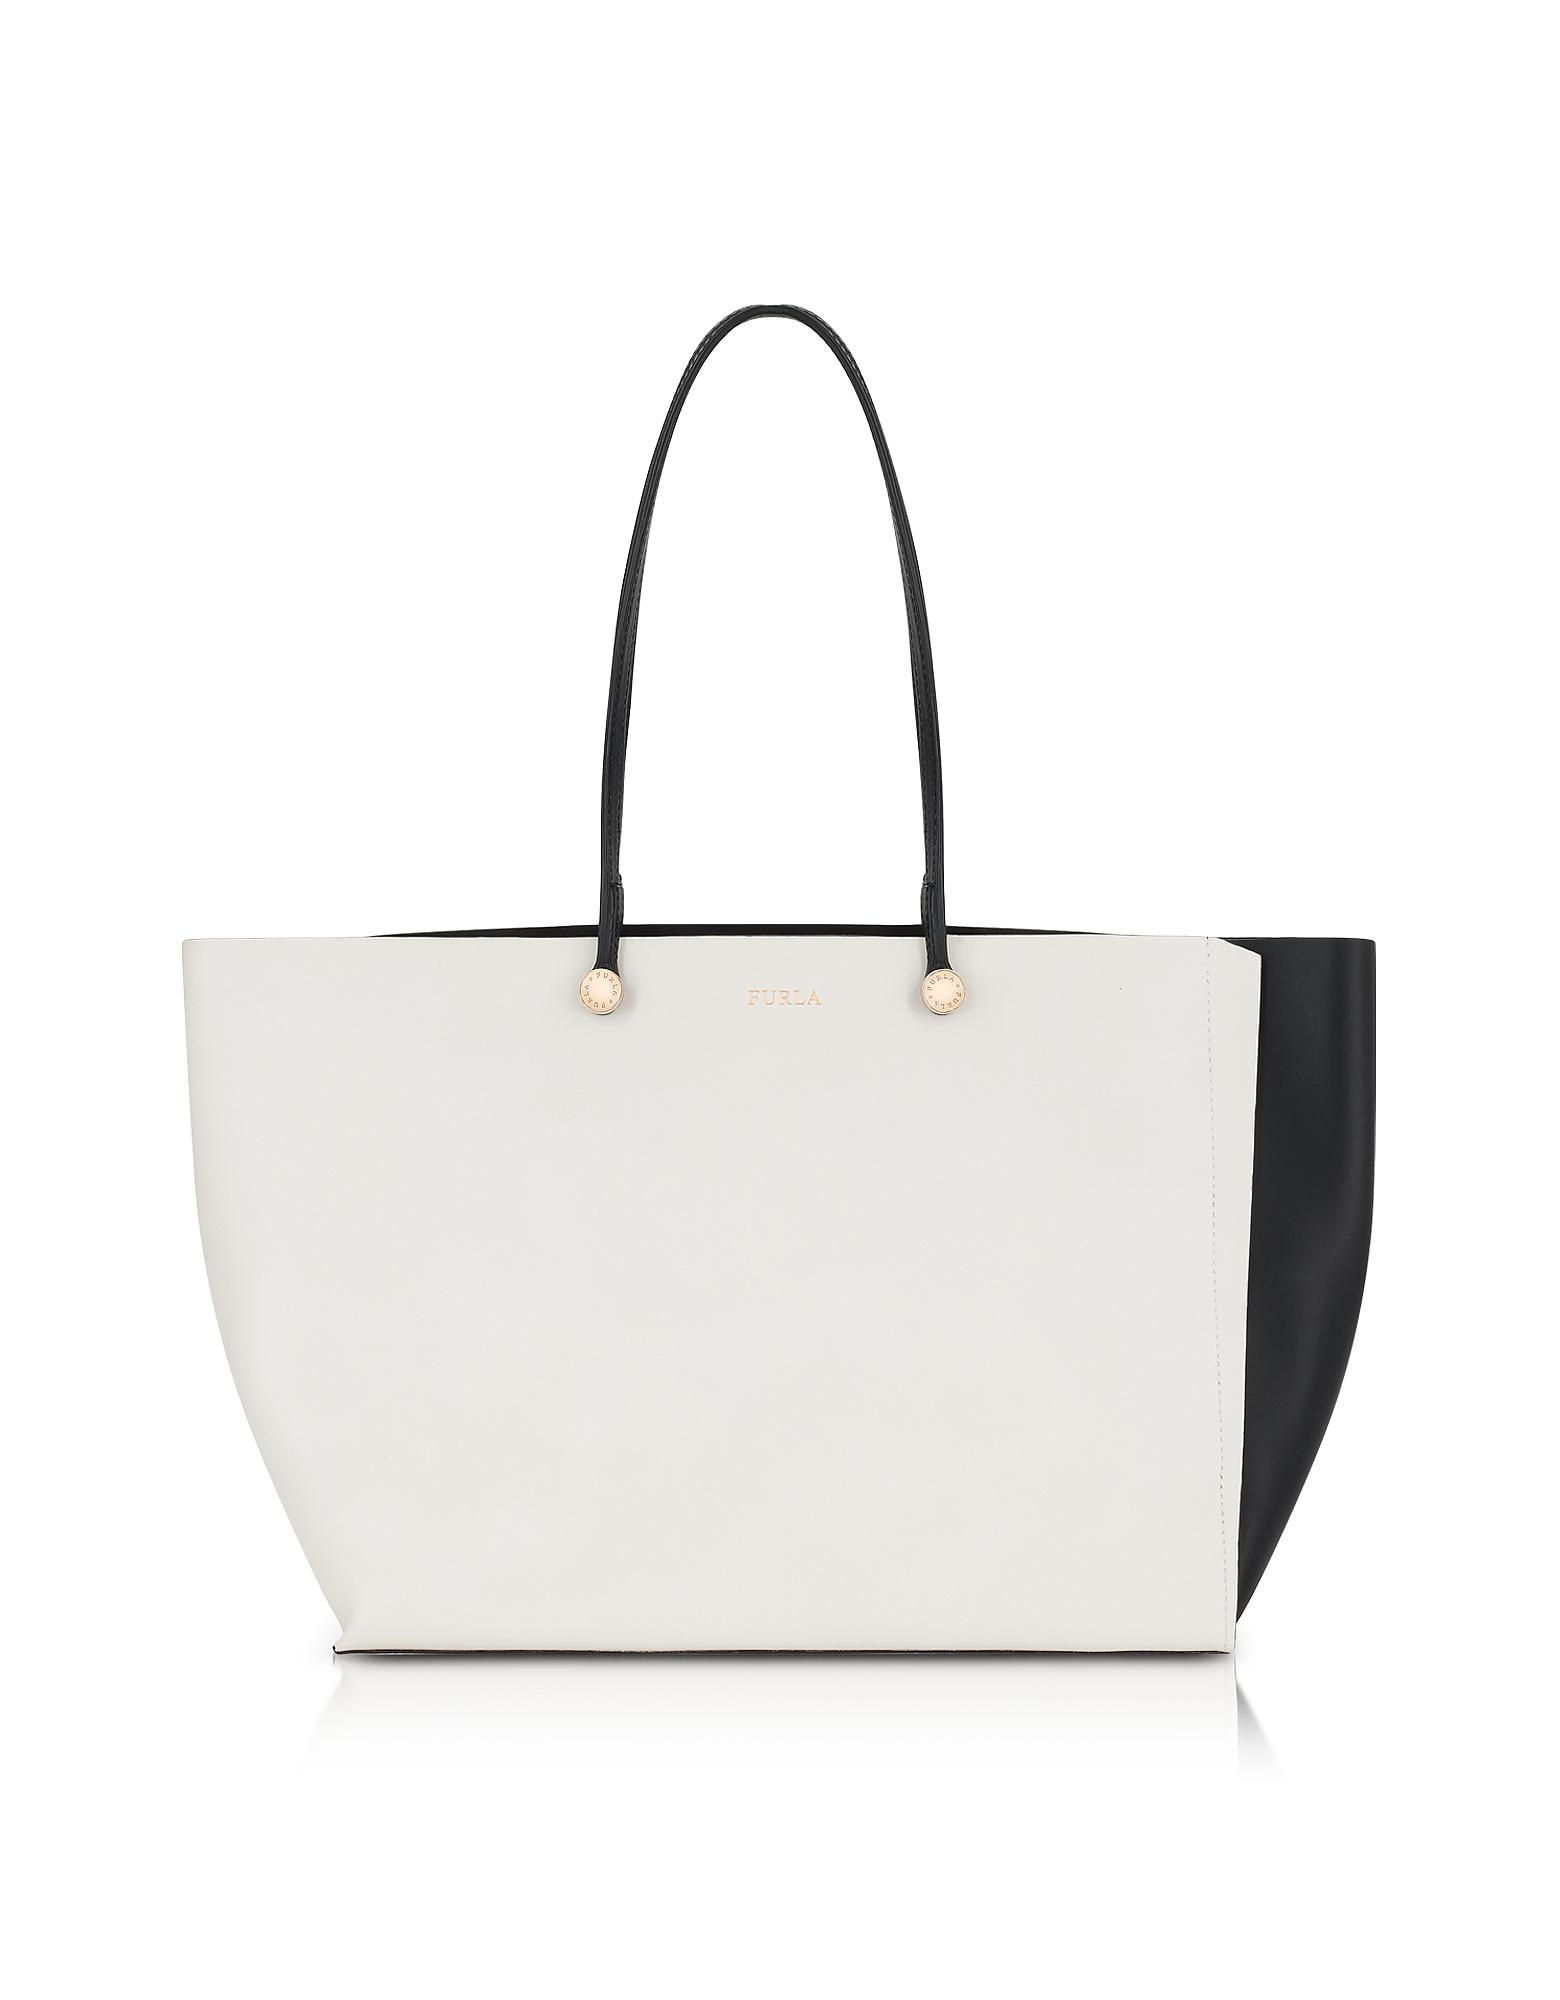 a4fd3465a5fdc3 Furla Petalo And Onyx Leather Eden Medium Tote Bag in White - Lyst